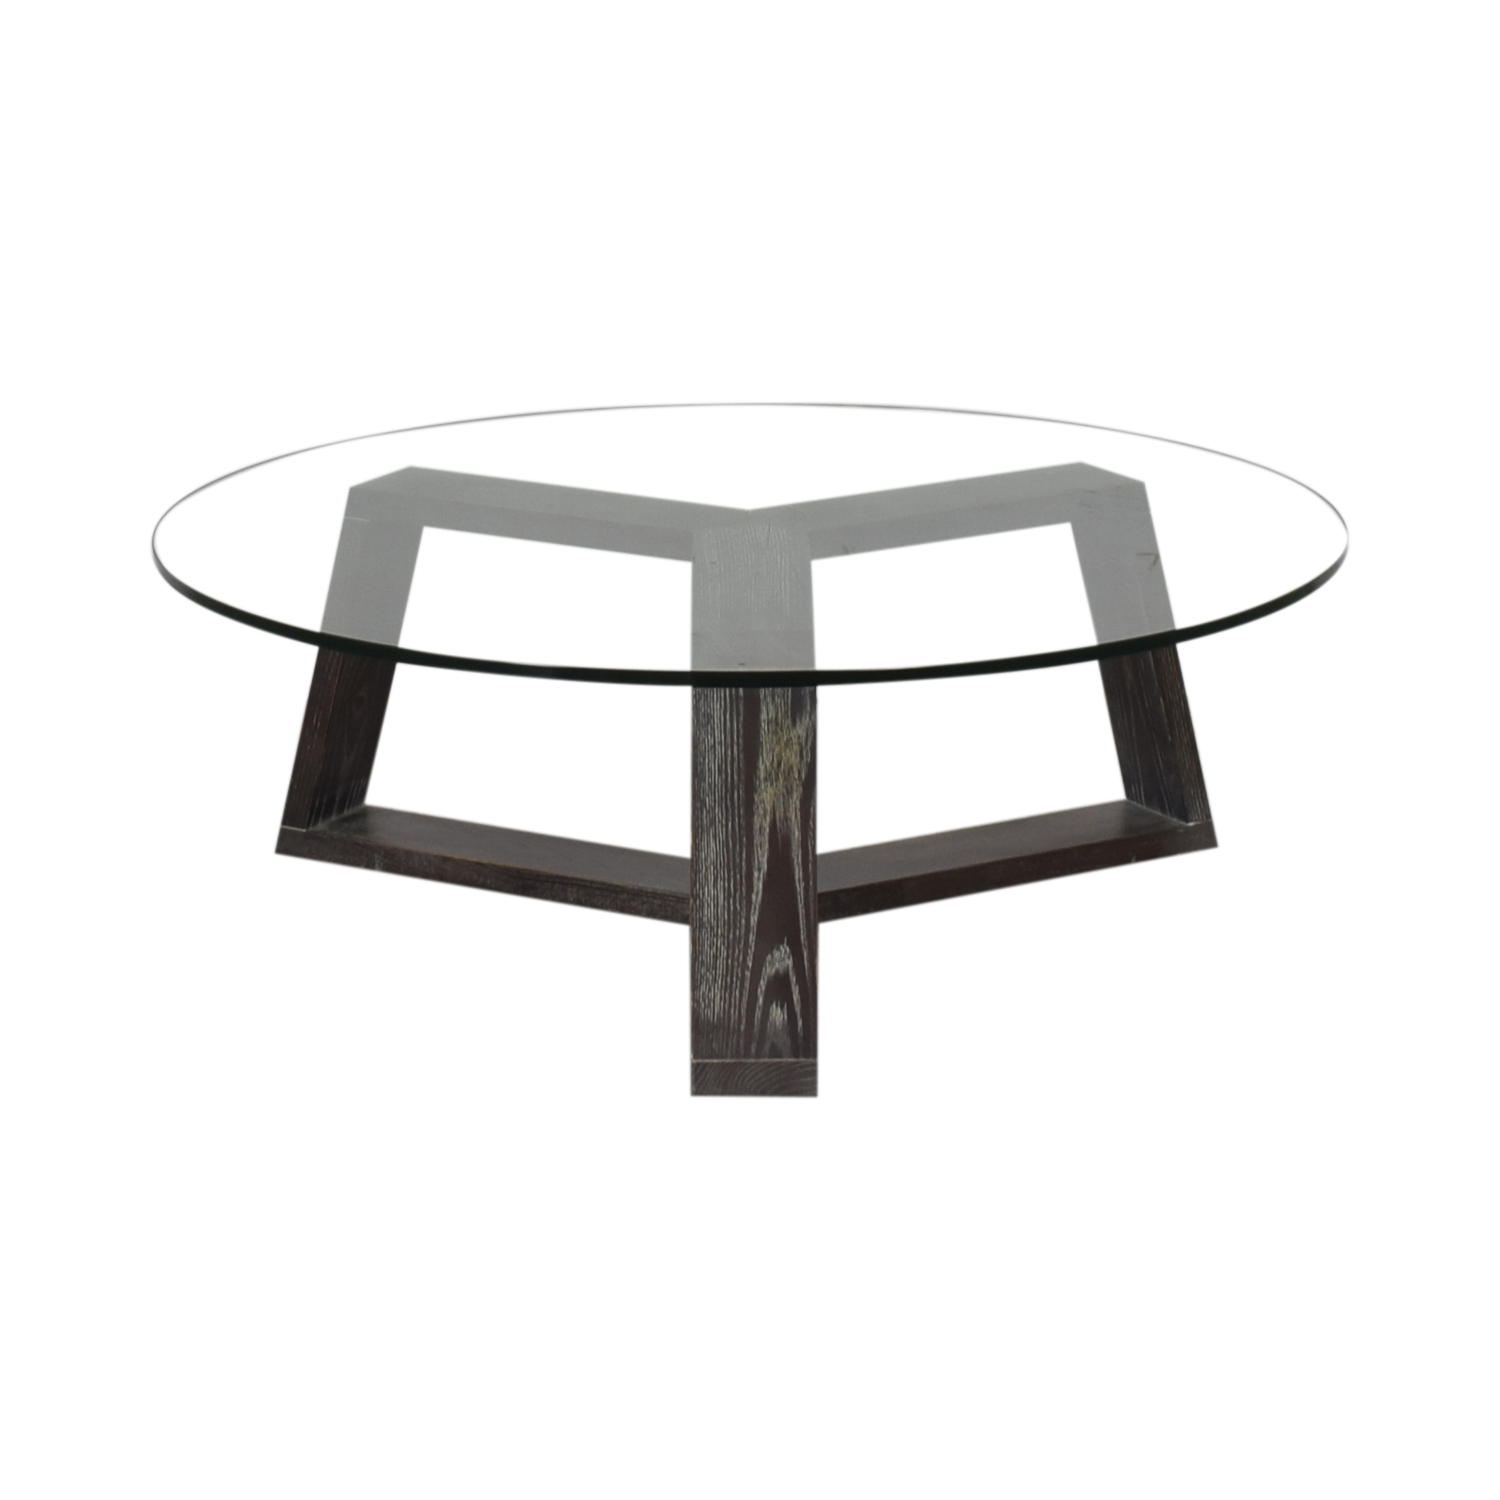 59 Off West Elm West Elm Round Glass Coffee Table Tables